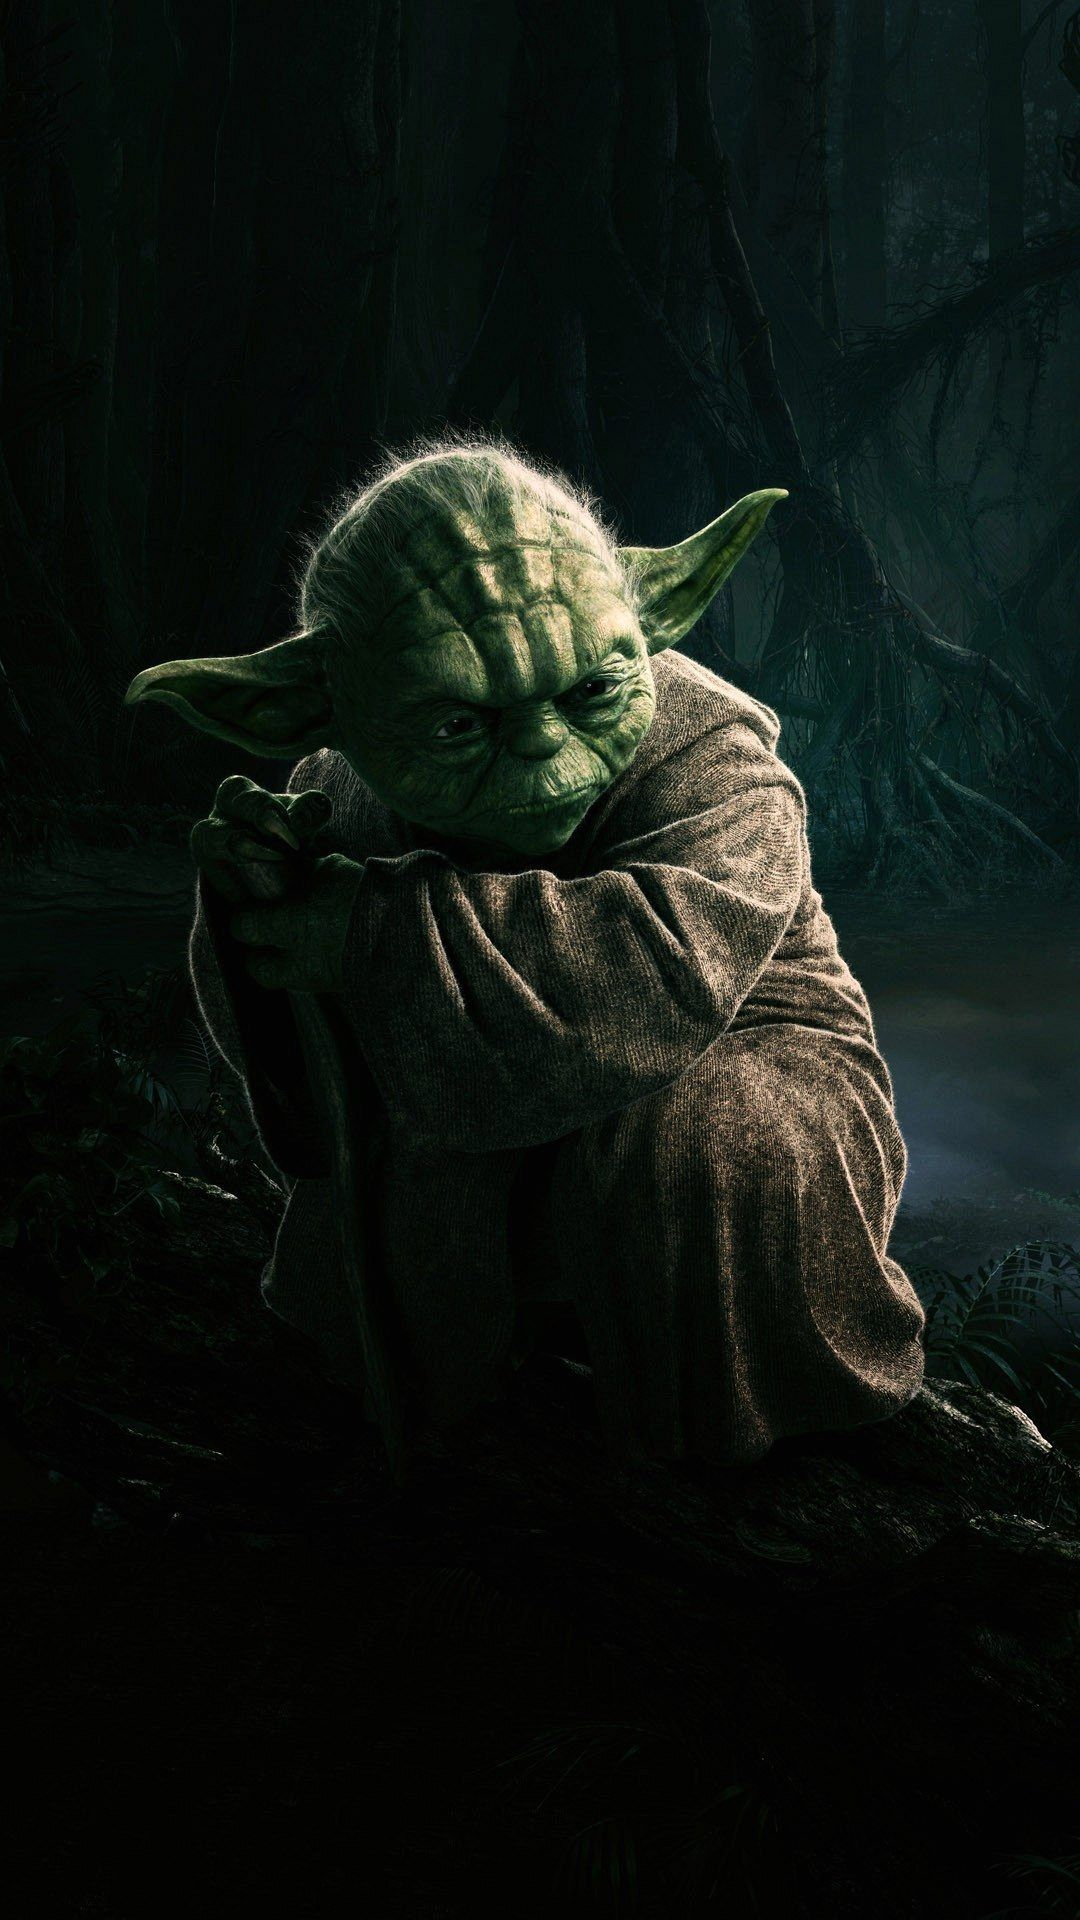 Star Wars Yoda iPhone Wallpaper   May The FORCE Be With Us   Pinterest